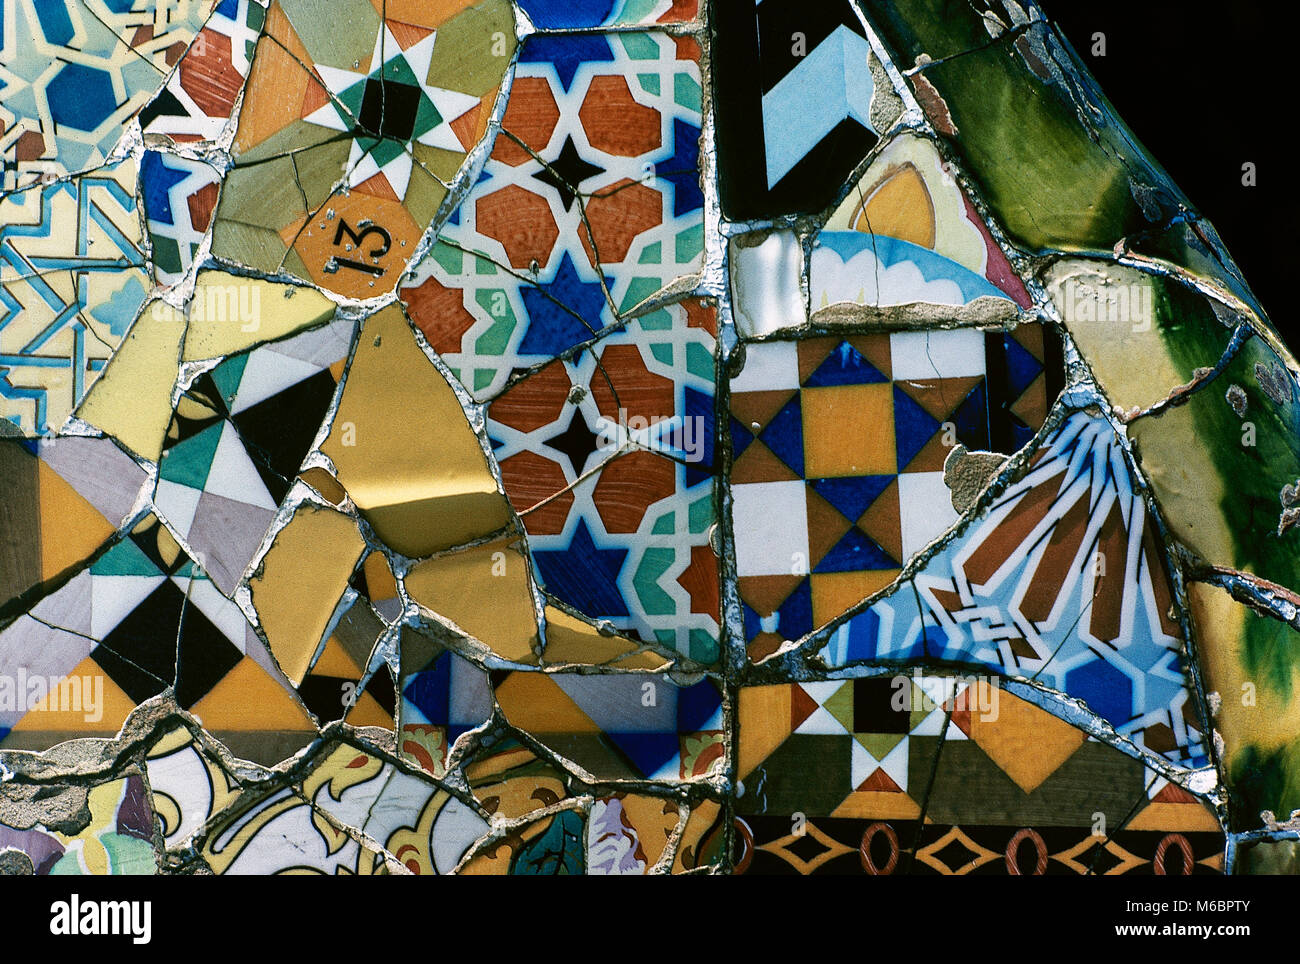 Barcelona, Catalonia, Spain. Park Guell, designed by Antonio Gaudi, 1900-1914. Mosaic on the main terrace, detail. - Stock Image